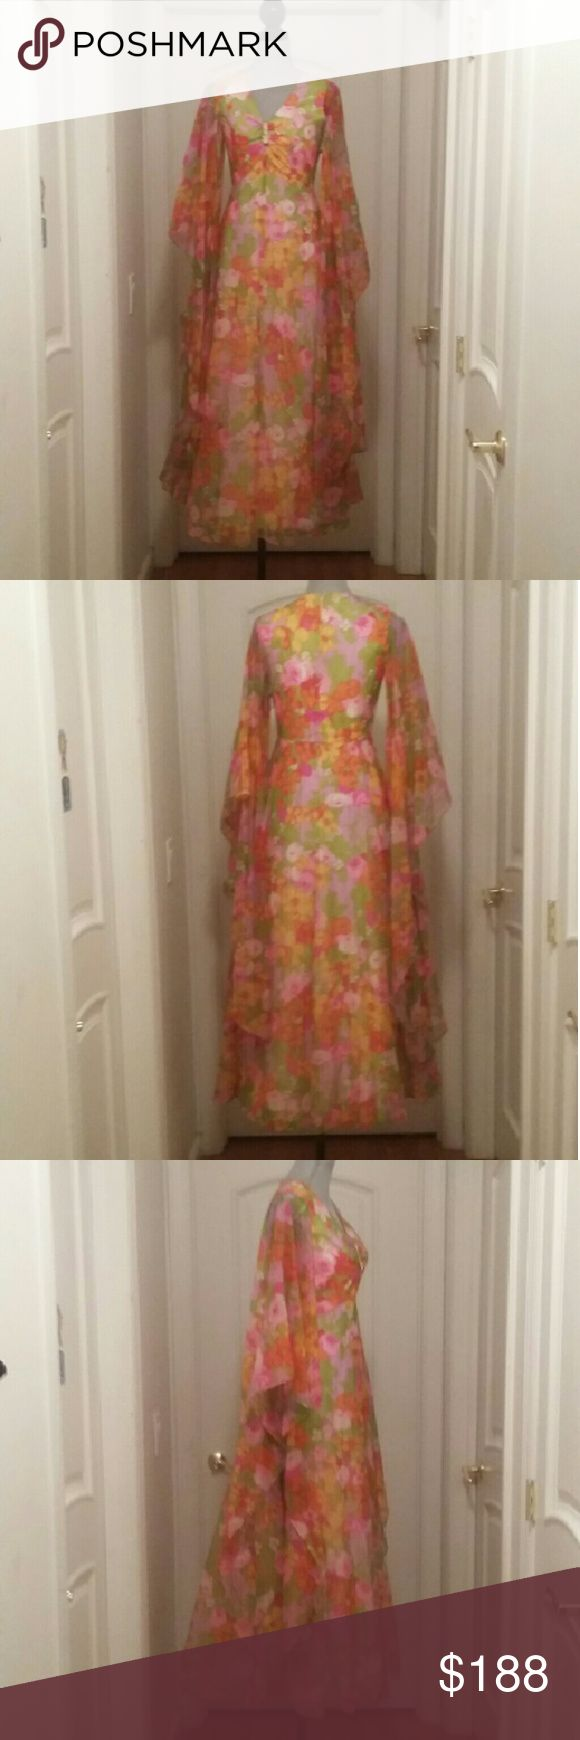 """Spectacular VTG Chiffon Evening Gown with Tags Reminds me of a gown Elizabeth Taylor would have worn Vintage 1950's or 60's Stunning Floral Chiffon Dress with Sheer Angel Sleeves V Neckline with 2.5"""" x  3/4"""" gold metal brooch embellishment with rainbow colored rhinestones 3 are missing which can easily be replaced. .price reflects flaw Rayon lining, Nylon Union Label & Original Department store Tags Measurements flat one sided  Shoulders  Chest:18"""" Waist: 14.5"""" Length: 56"""" Vintage Dresses"""